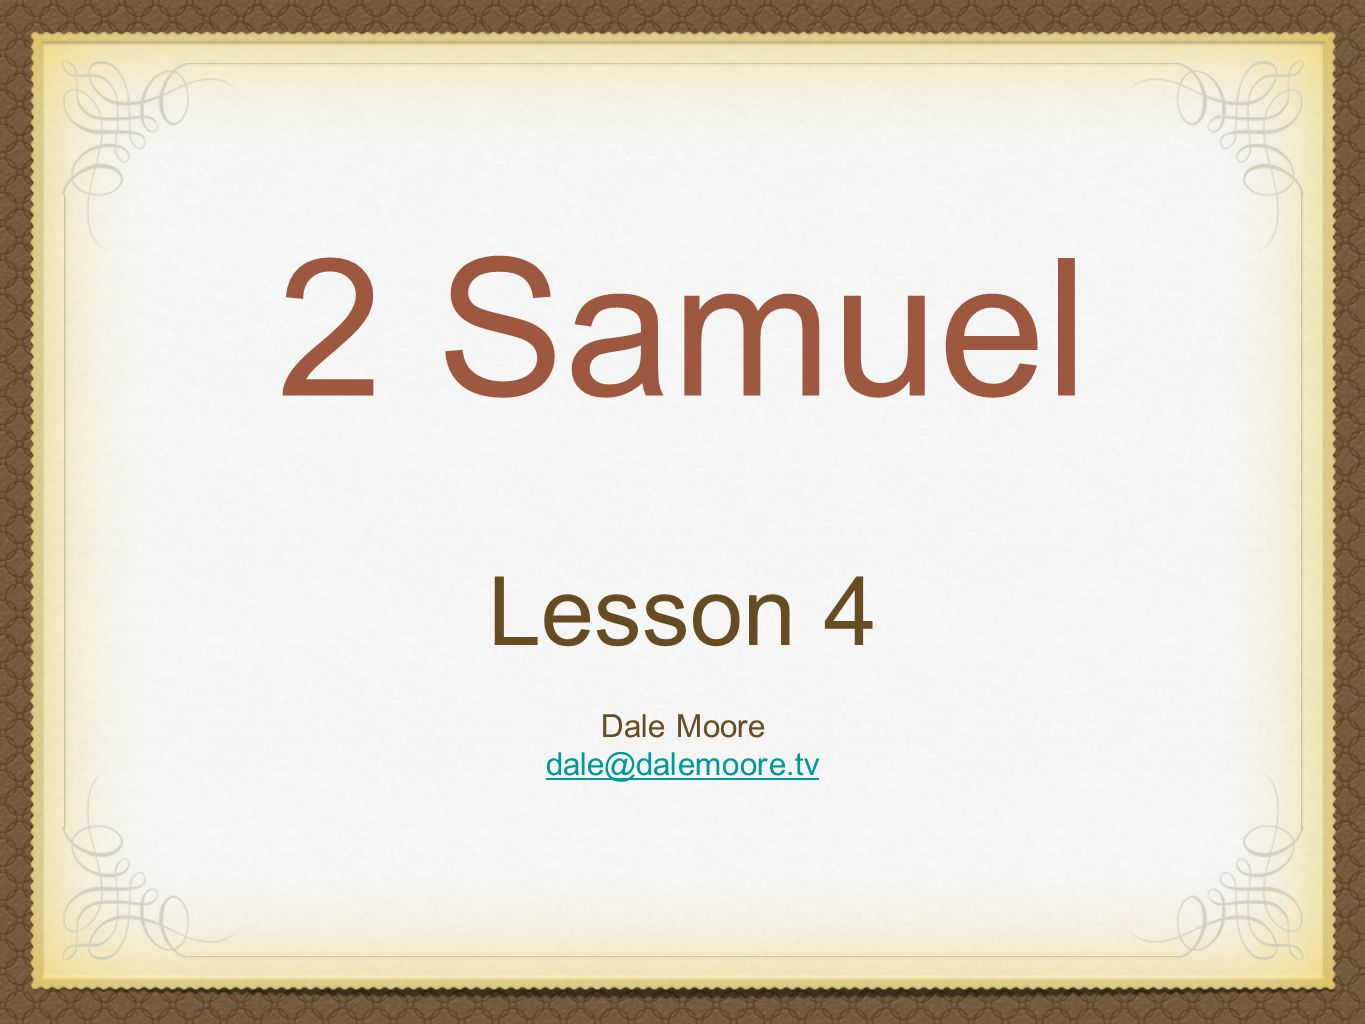 2 Samuel 15 Absalom was handsome, thick hair, articulate, shrewd From Hebron Absalom led a conspiracy against David Ahithophel (Bathsheba's grandfather) went with Absalom David fled, wept, barefooted